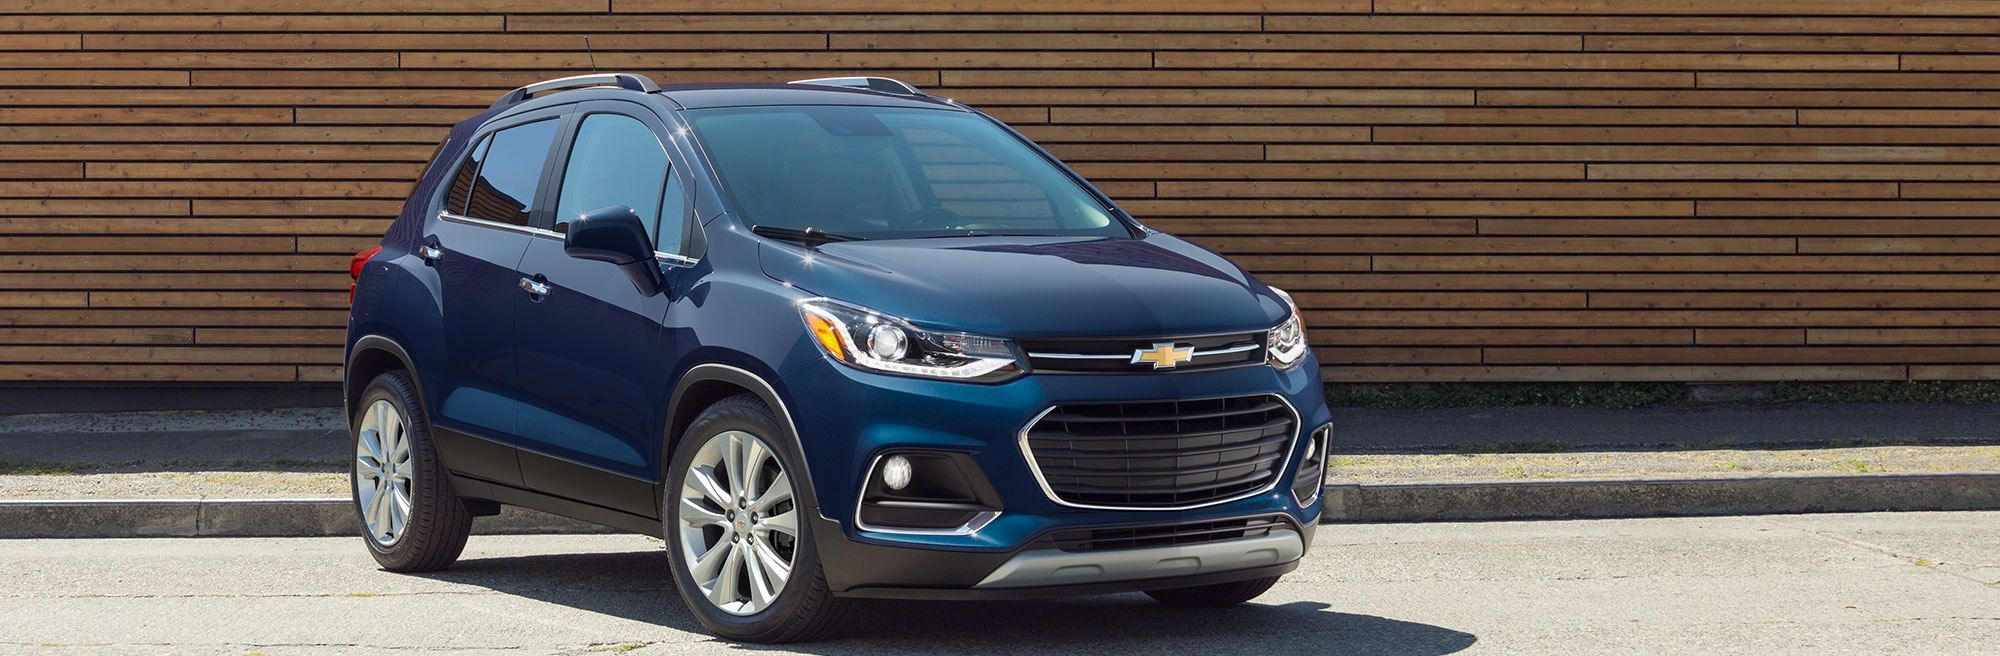 2019 Chevrolet Trax for Sale in Bartlesville, OK